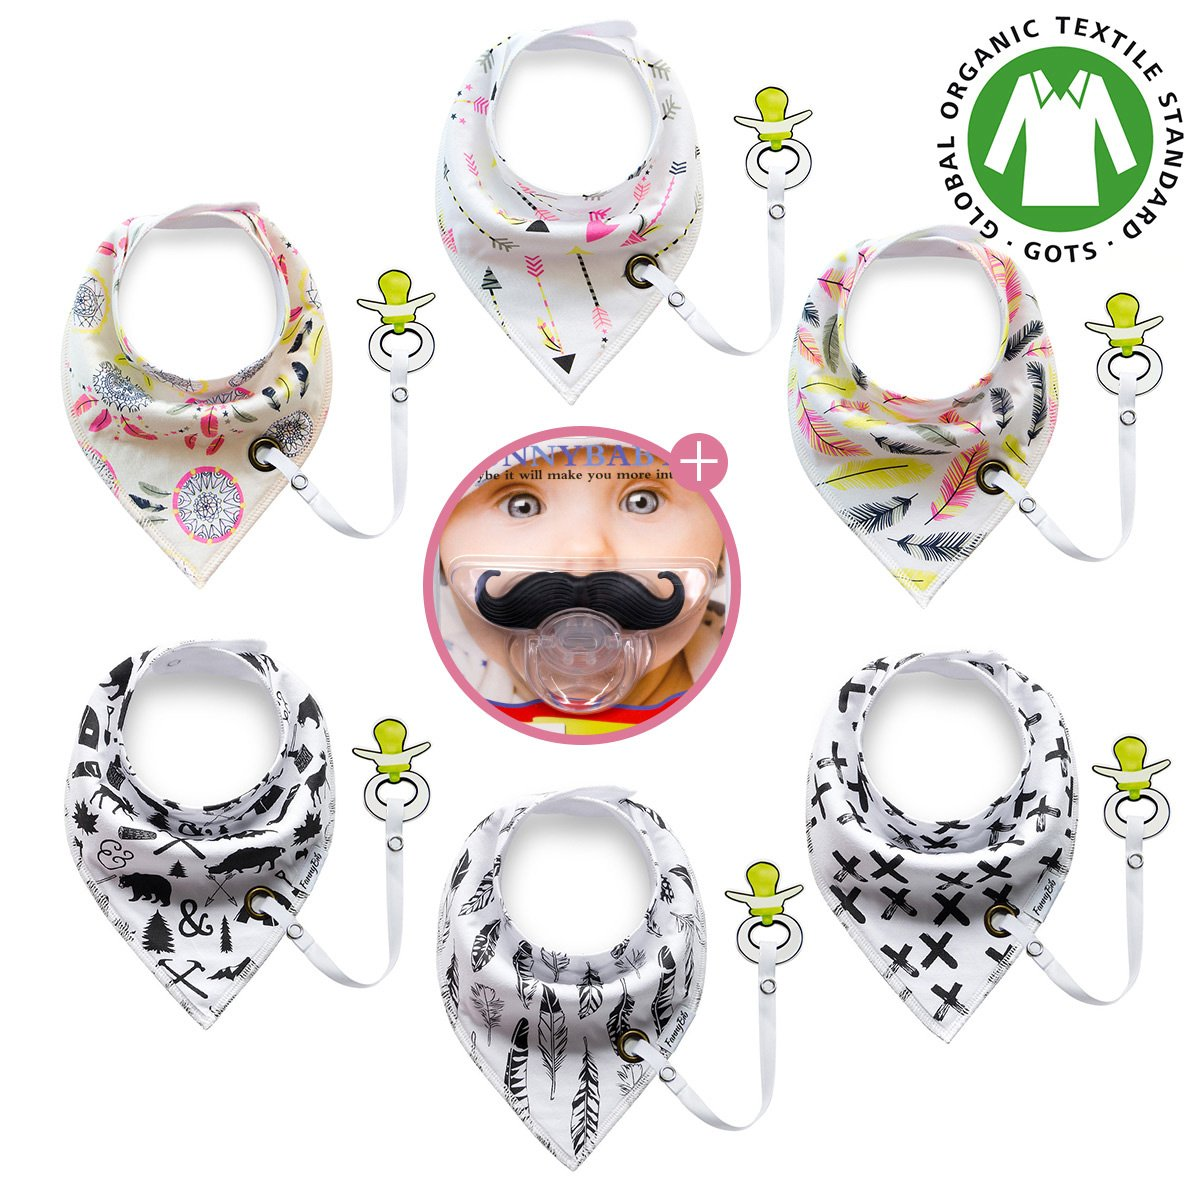 Premium Baby Bandana Drool Bibs unisex 6-Pack Gift Set for Drooling Teething Feeding 100% Organic Cotton Hypoallergenic Absorbent with 1 Mustache Pacifier for Boys and Girls FannyBib